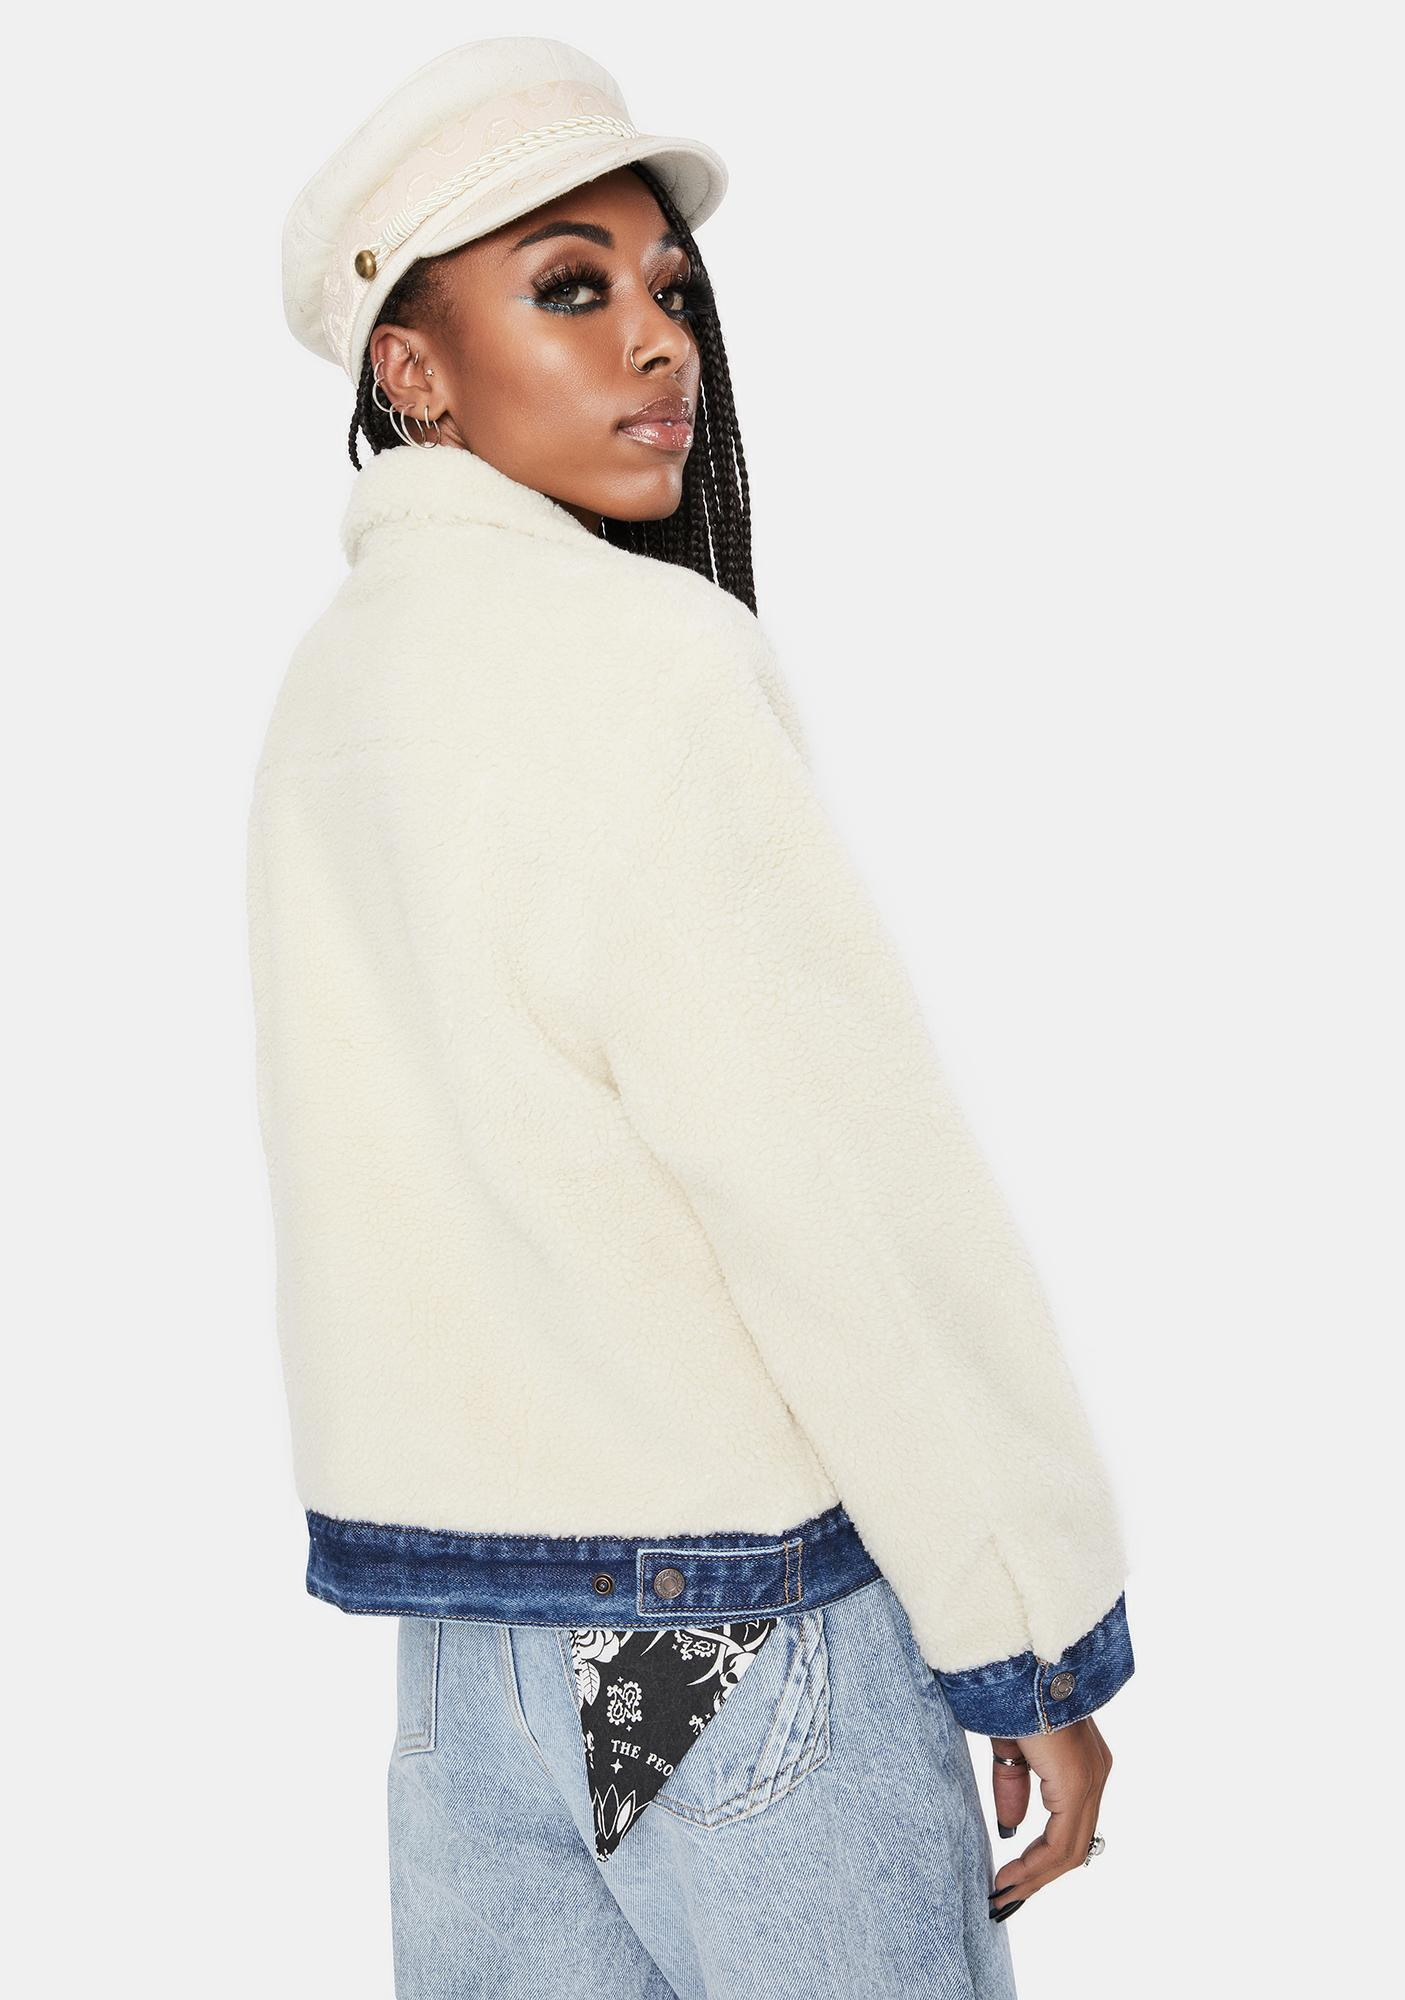 Levis Counting Sheep Ex-Bf Pieced Trucker Jacket